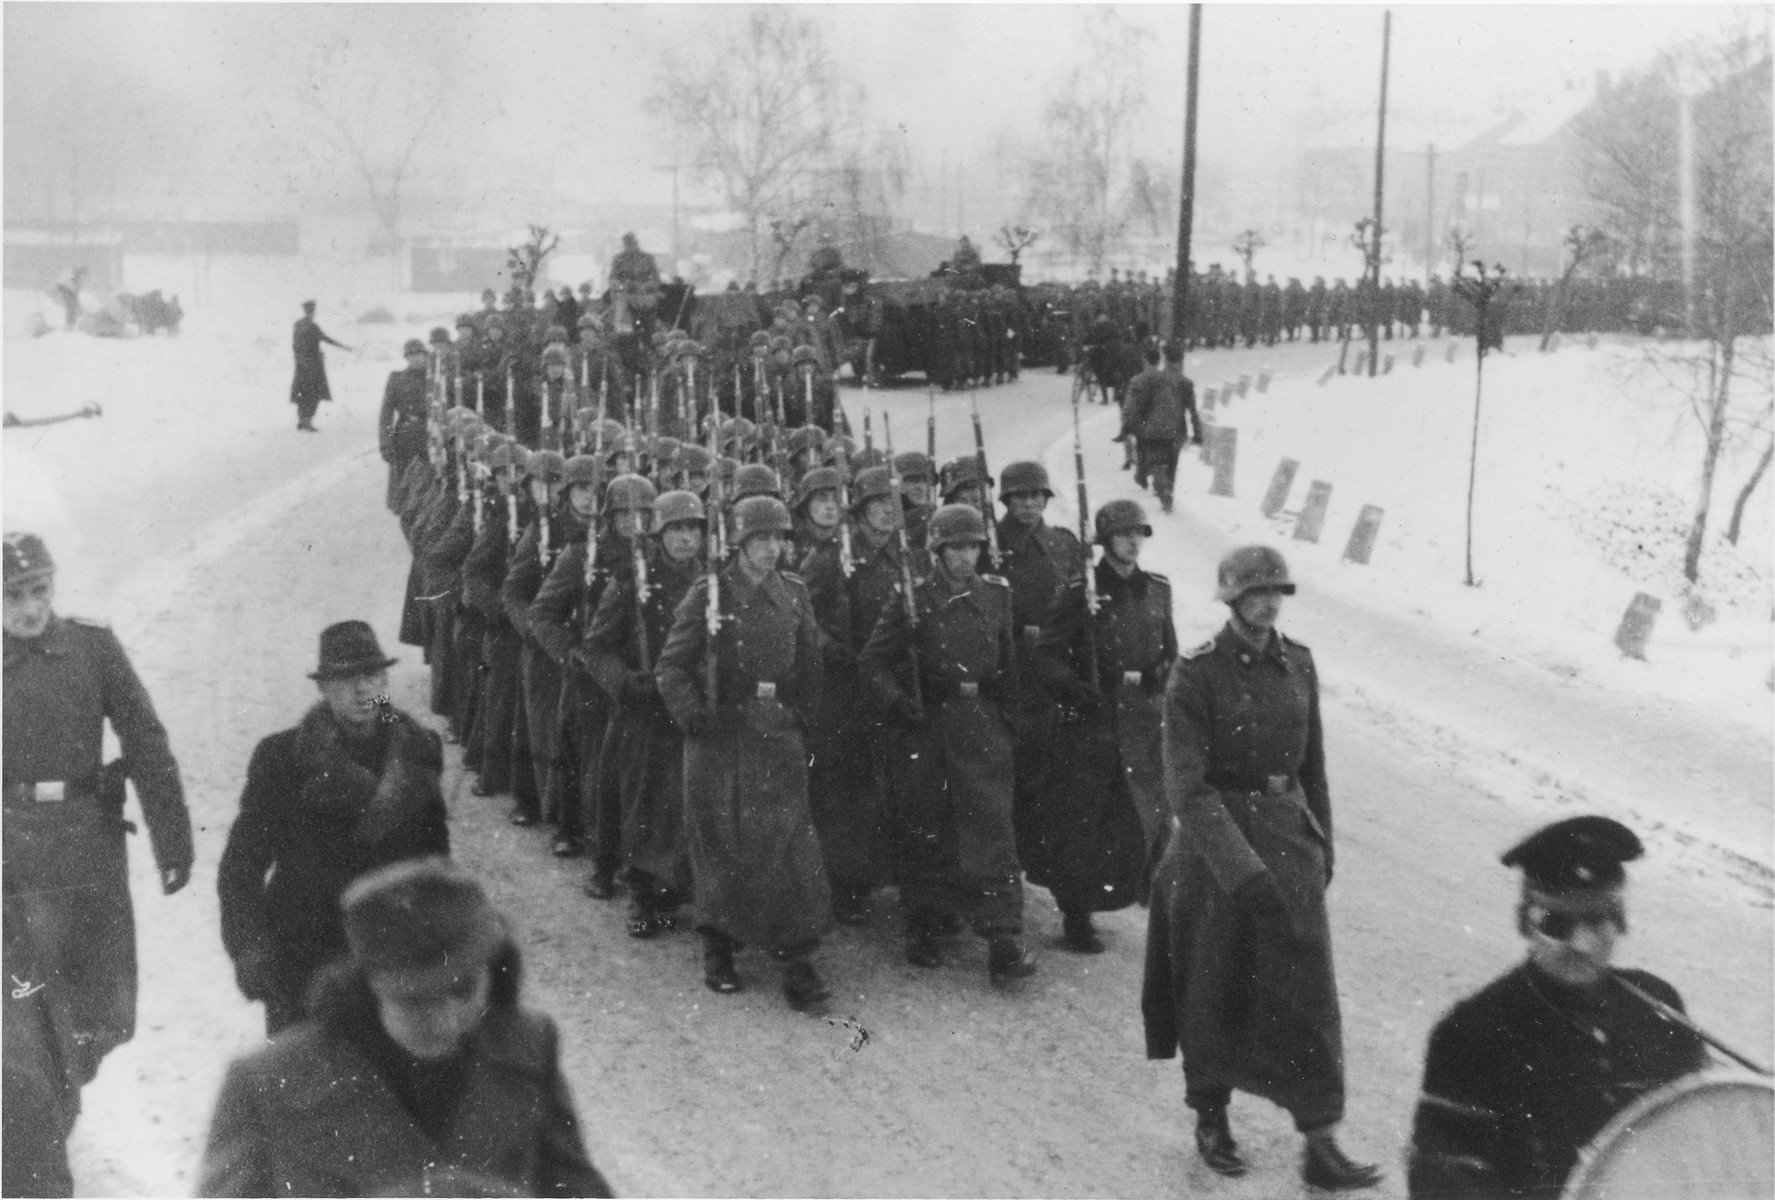 "Germans troops in three long columns march along with rifles shouldered during a military funeral near Auschwitz.  The original caption reads ""Beisetzung von SS Kameraden nach einem Terrorangriff.""  (Burying our SS comrades from a terror attack.)  [This probably is the aftermath of the December 26 bombing based on the snow on the ground but it could also be September 13th bombing of IG Farben in which 15 SS men died in the SS residential blocks and 28 were seriously wounded.]"